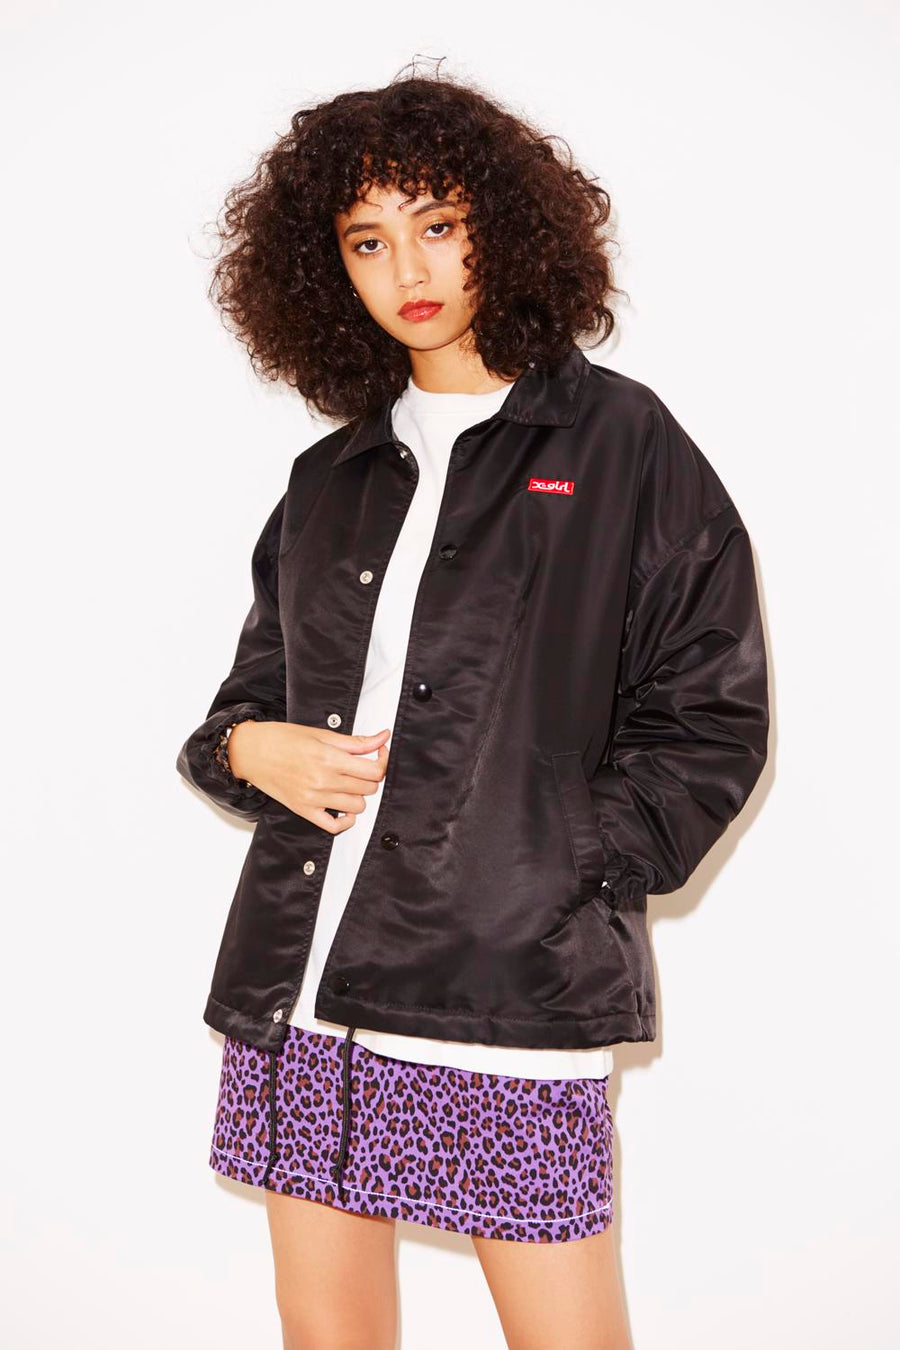 BOX LOGO COACH JACKET, JACKETS, X-Girl